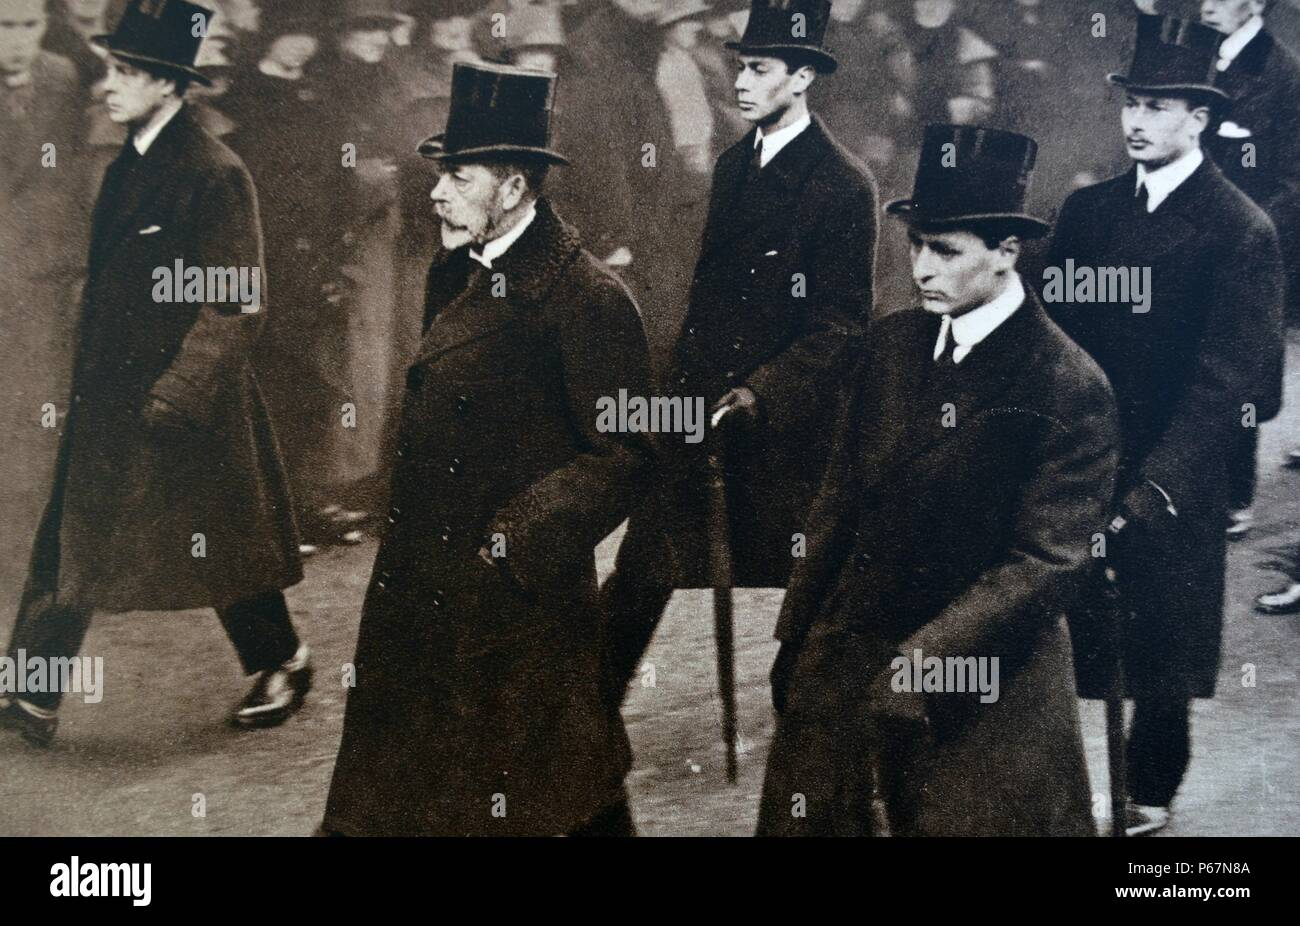 Queen Alexandra (mother of George V) funeral. The image shows George V between the Prince of Wales (later King Edward VIII) and Crown Prince Olaf of Norway. Behind them walk the Duke of York (later King George VI) and Prince Henry (the Duke of Gloucester). - Stock Image